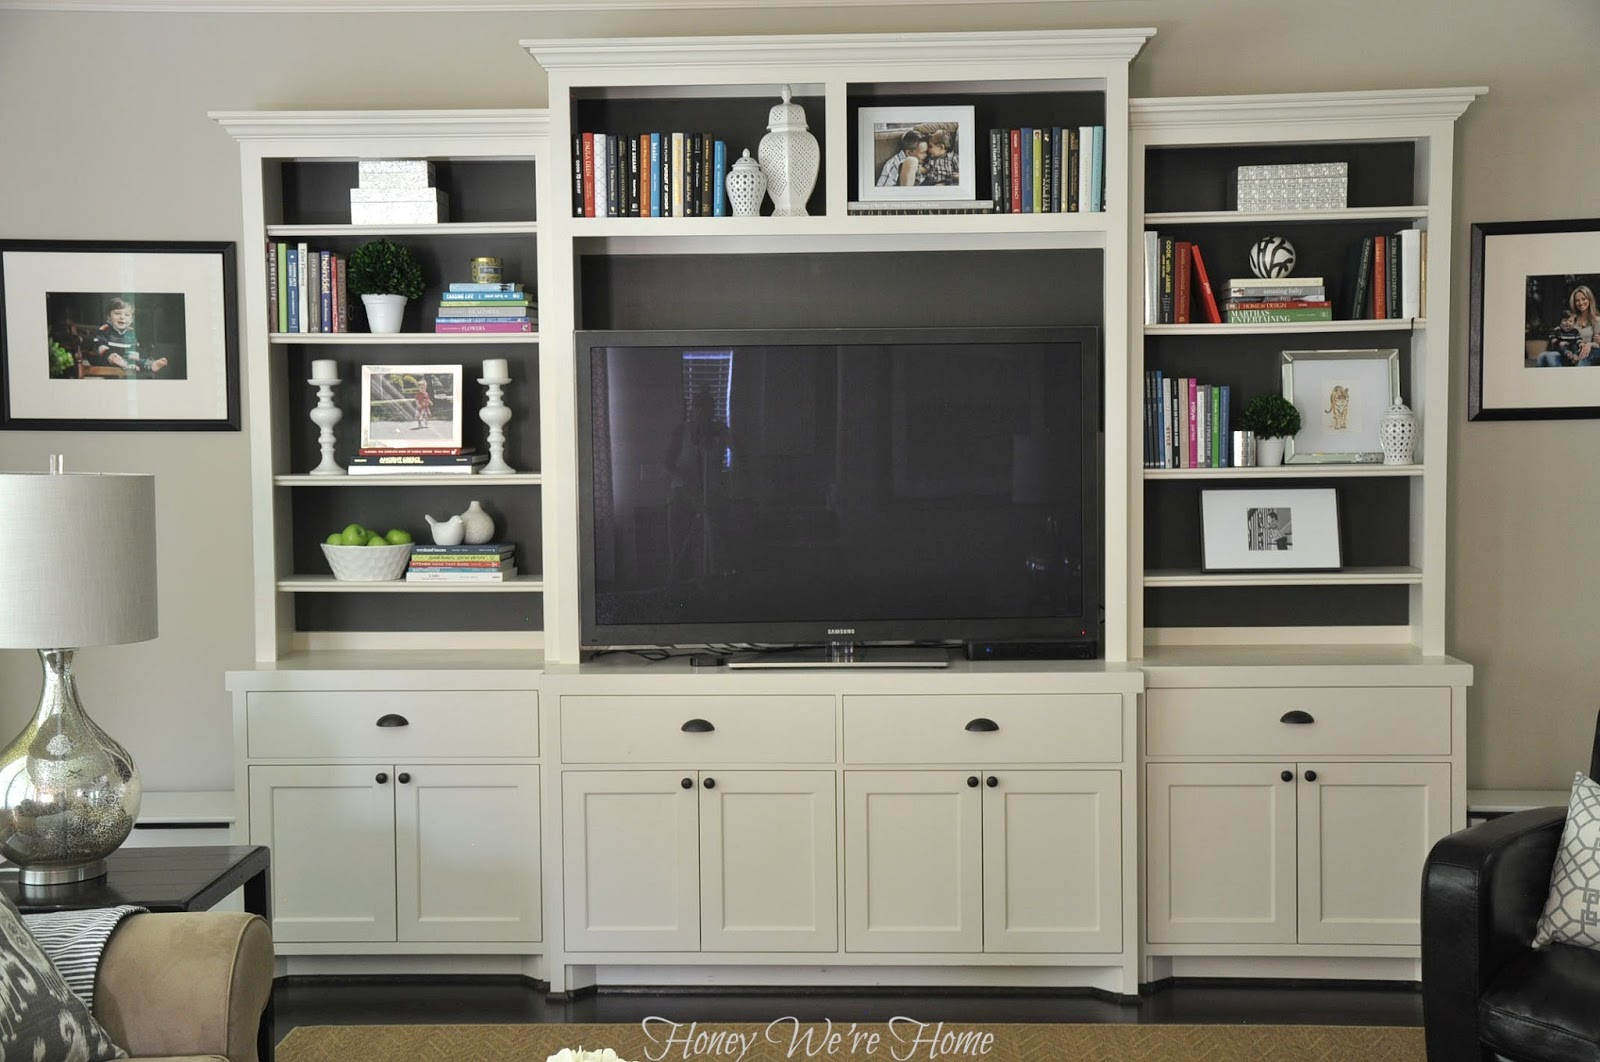 Media Schrank Painted Media Cabinet & Bookshelf Styling | Daun Segar Sari